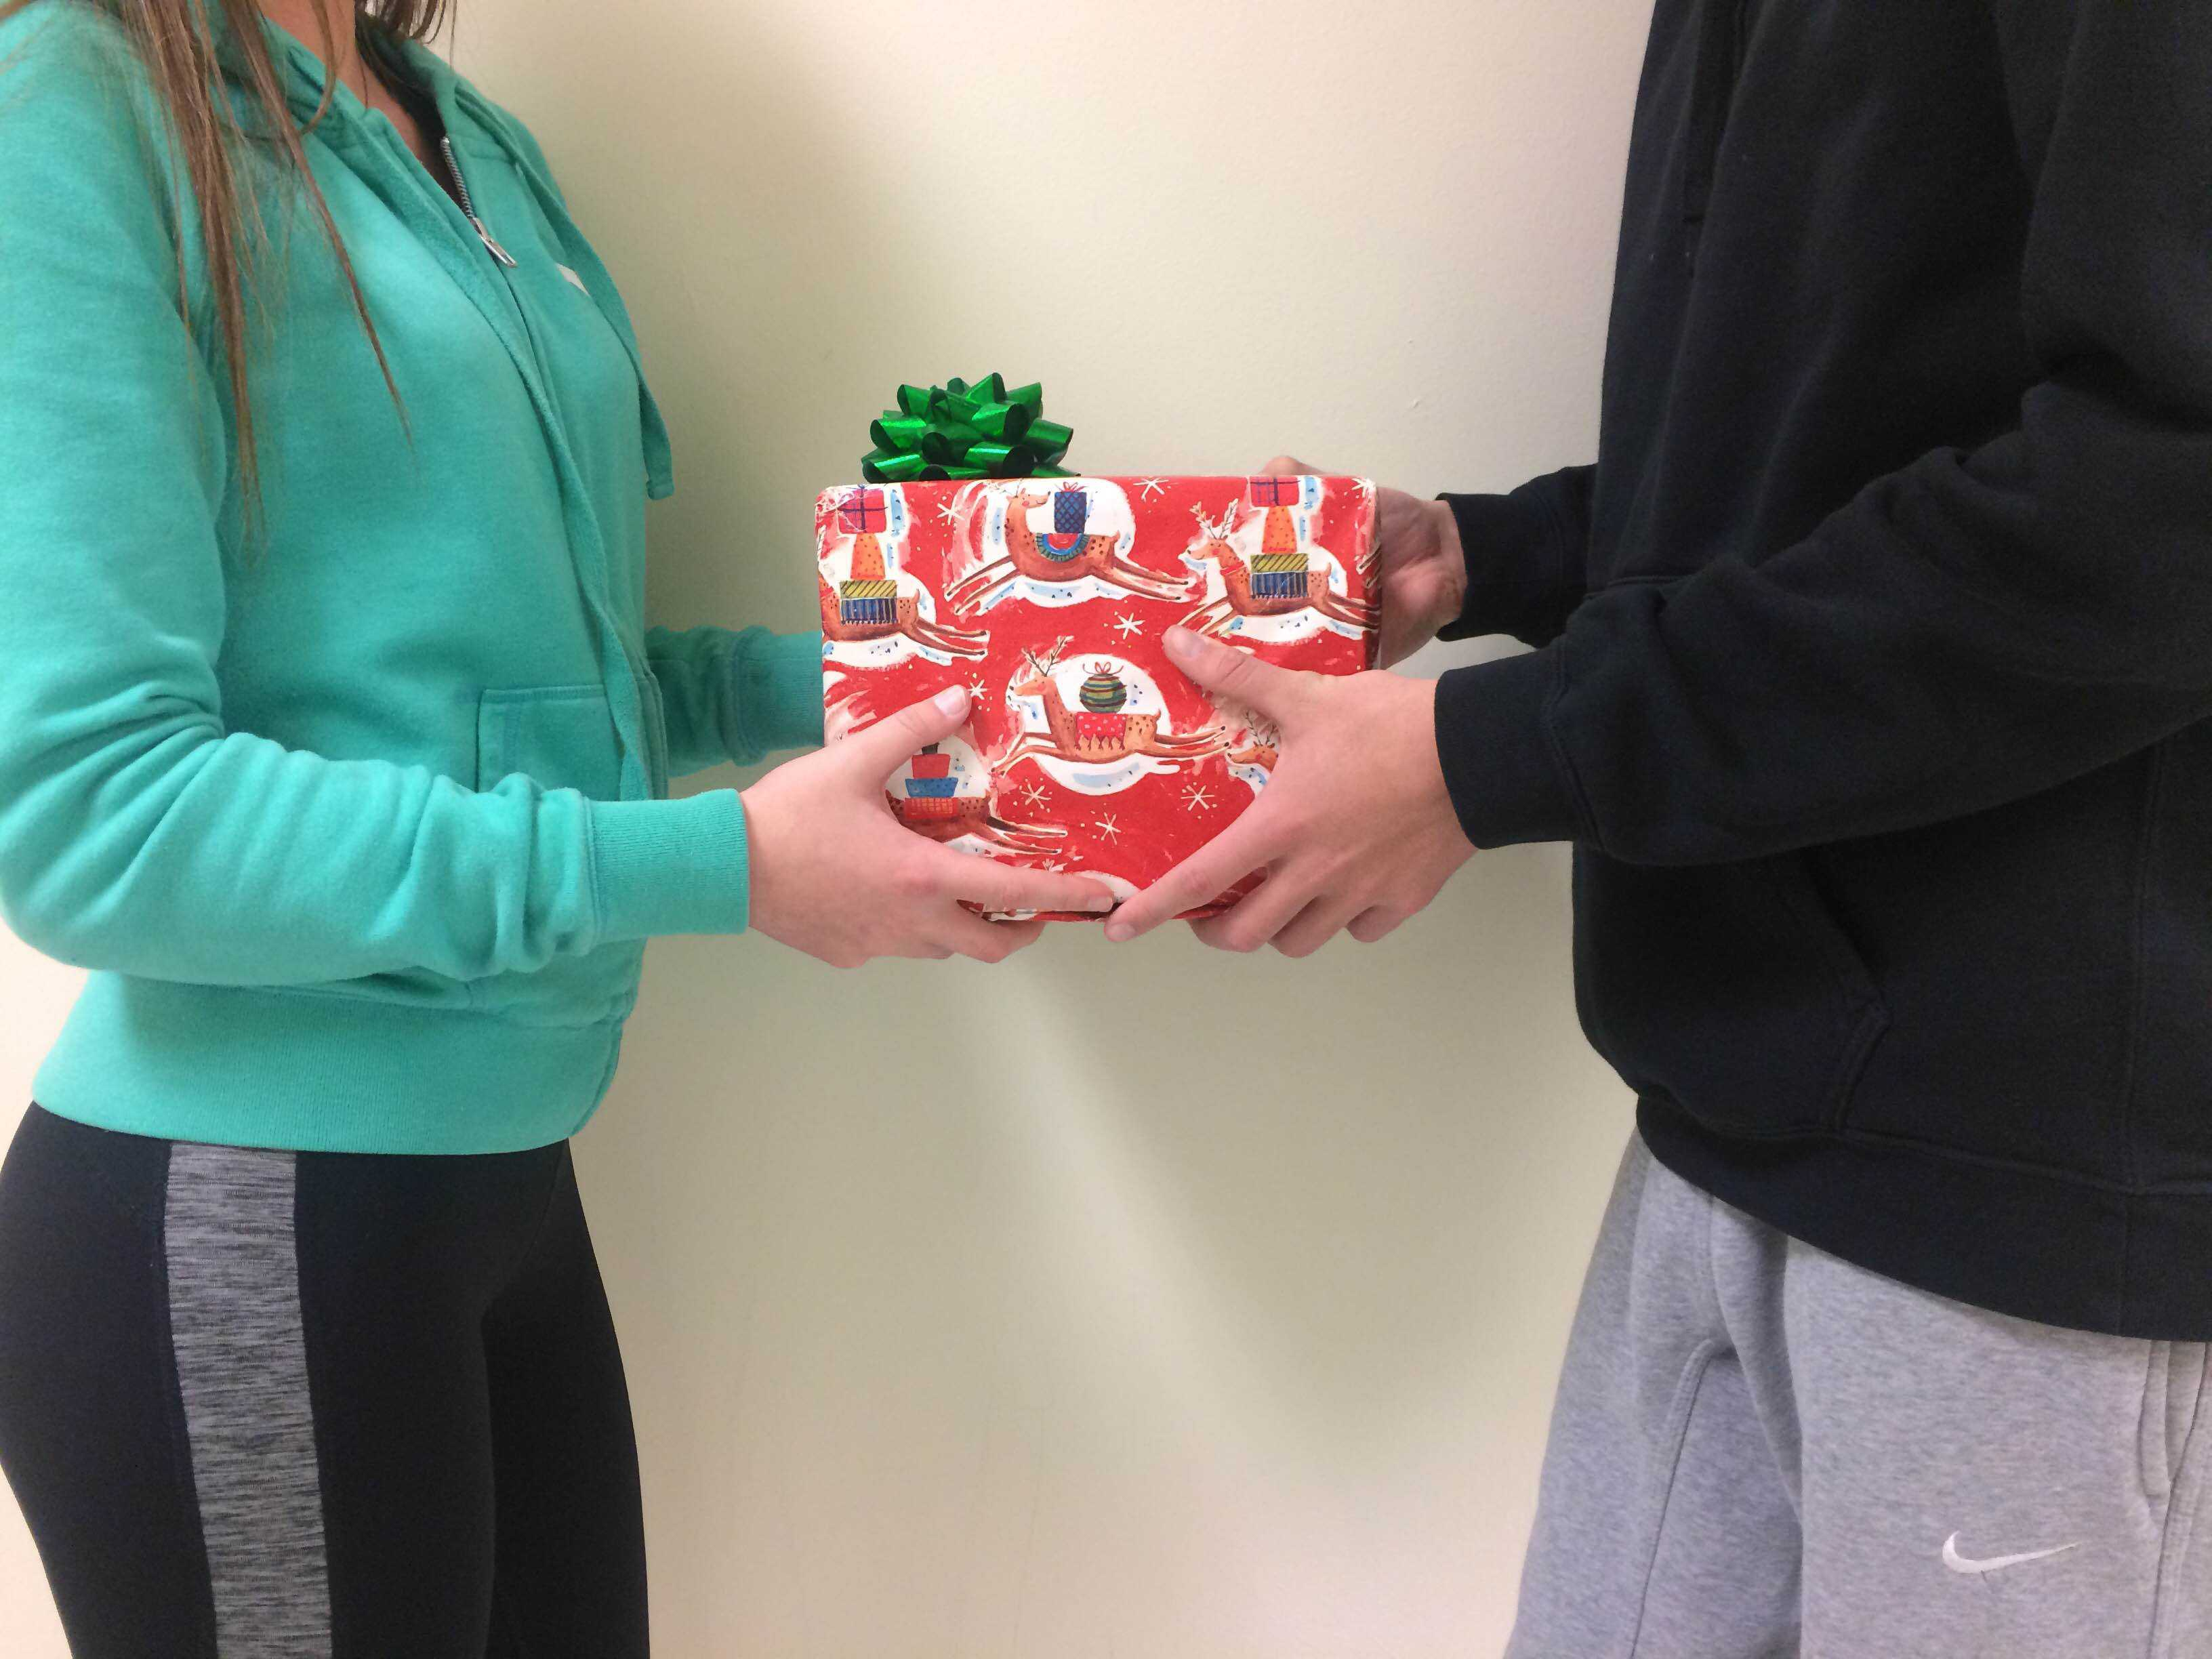 Two RBHS students exchanging gifts.